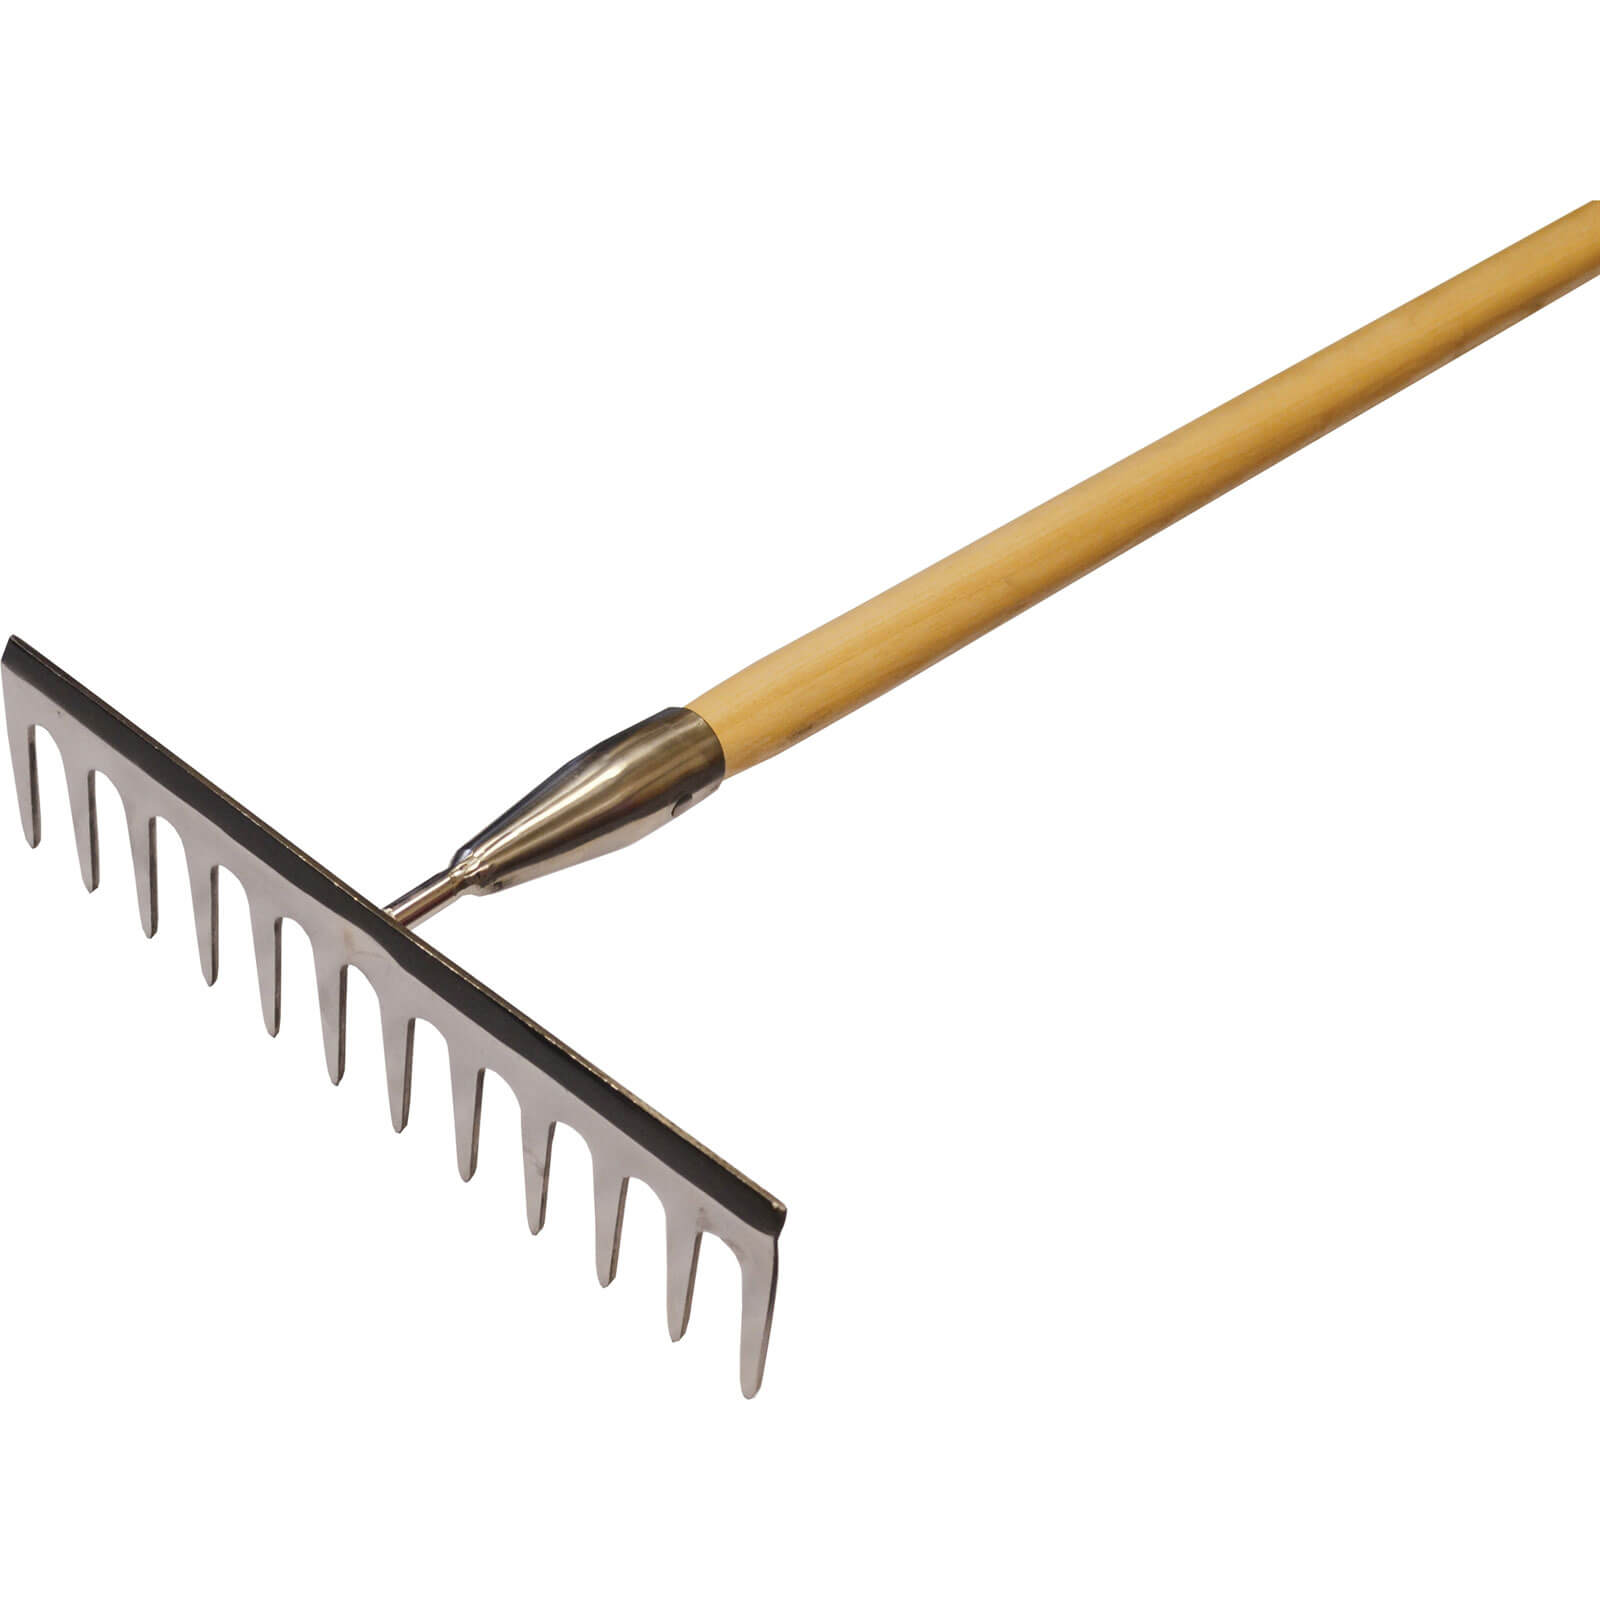 Garden Rakes from THE Gardening WEBSITE